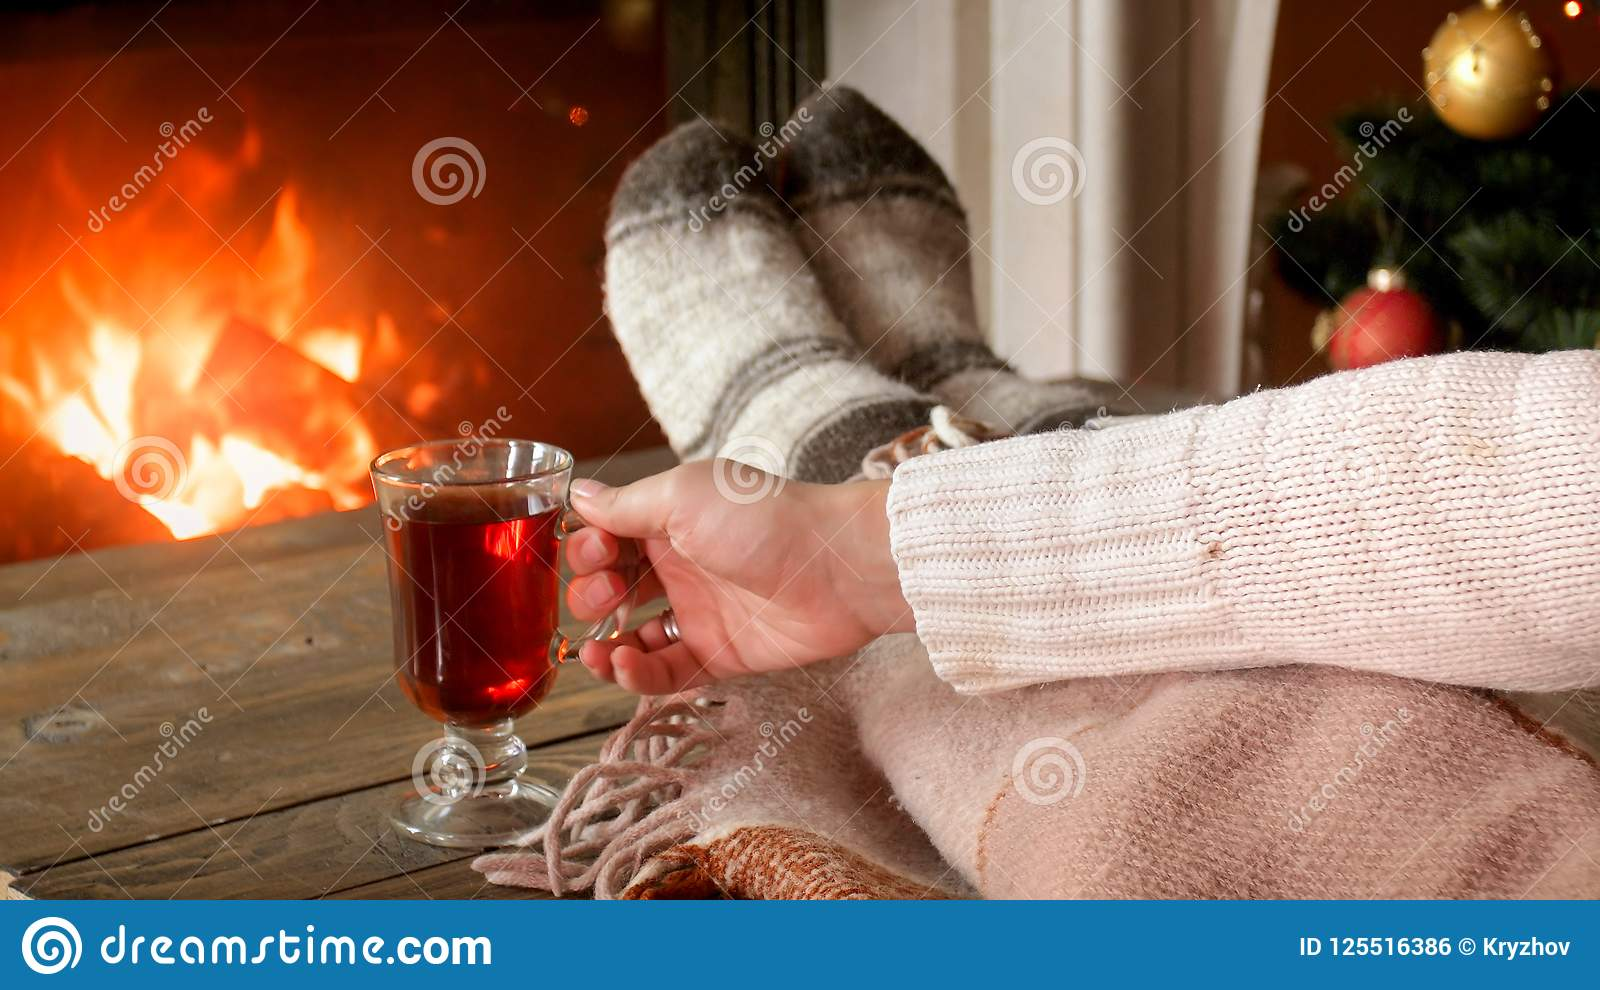 Closeup image of woman drinking mulled wine in living room y the fireplace